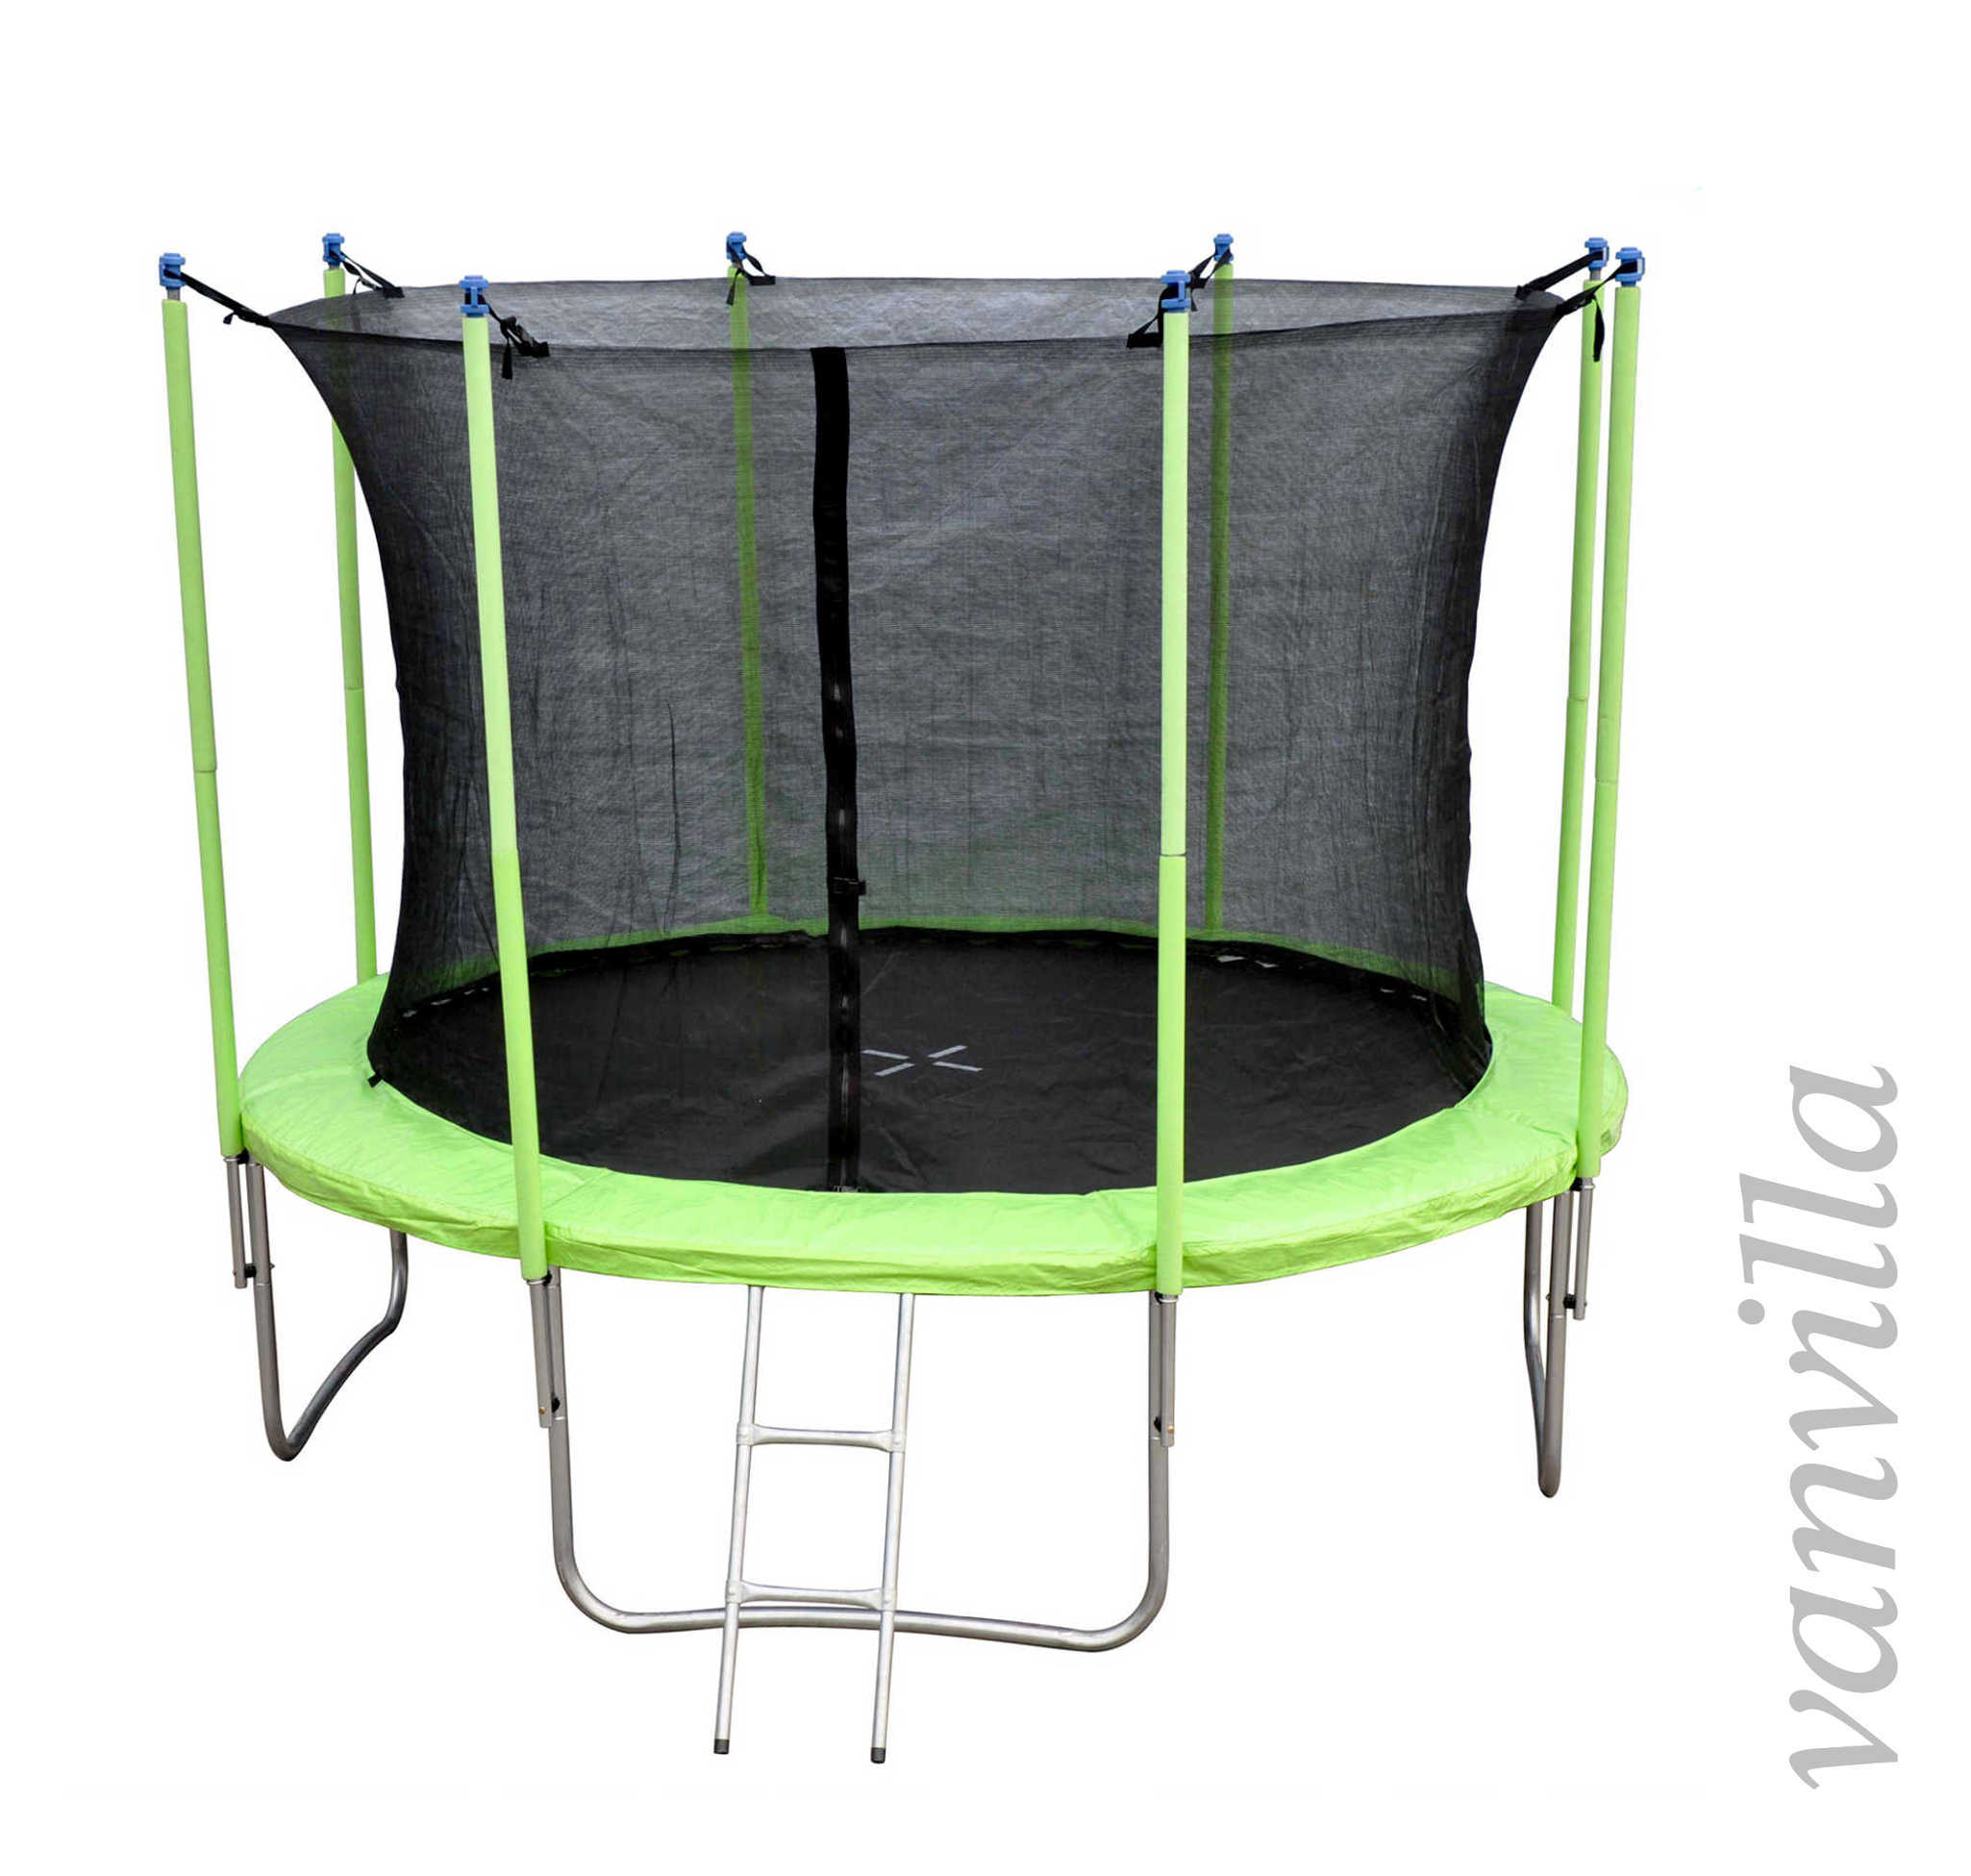 trampolin set gartentrampolin 2015 plane sicherheitsnetz leiter regenschutz ebay. Black Bedroom Furniture Sets. Home Design Ideas